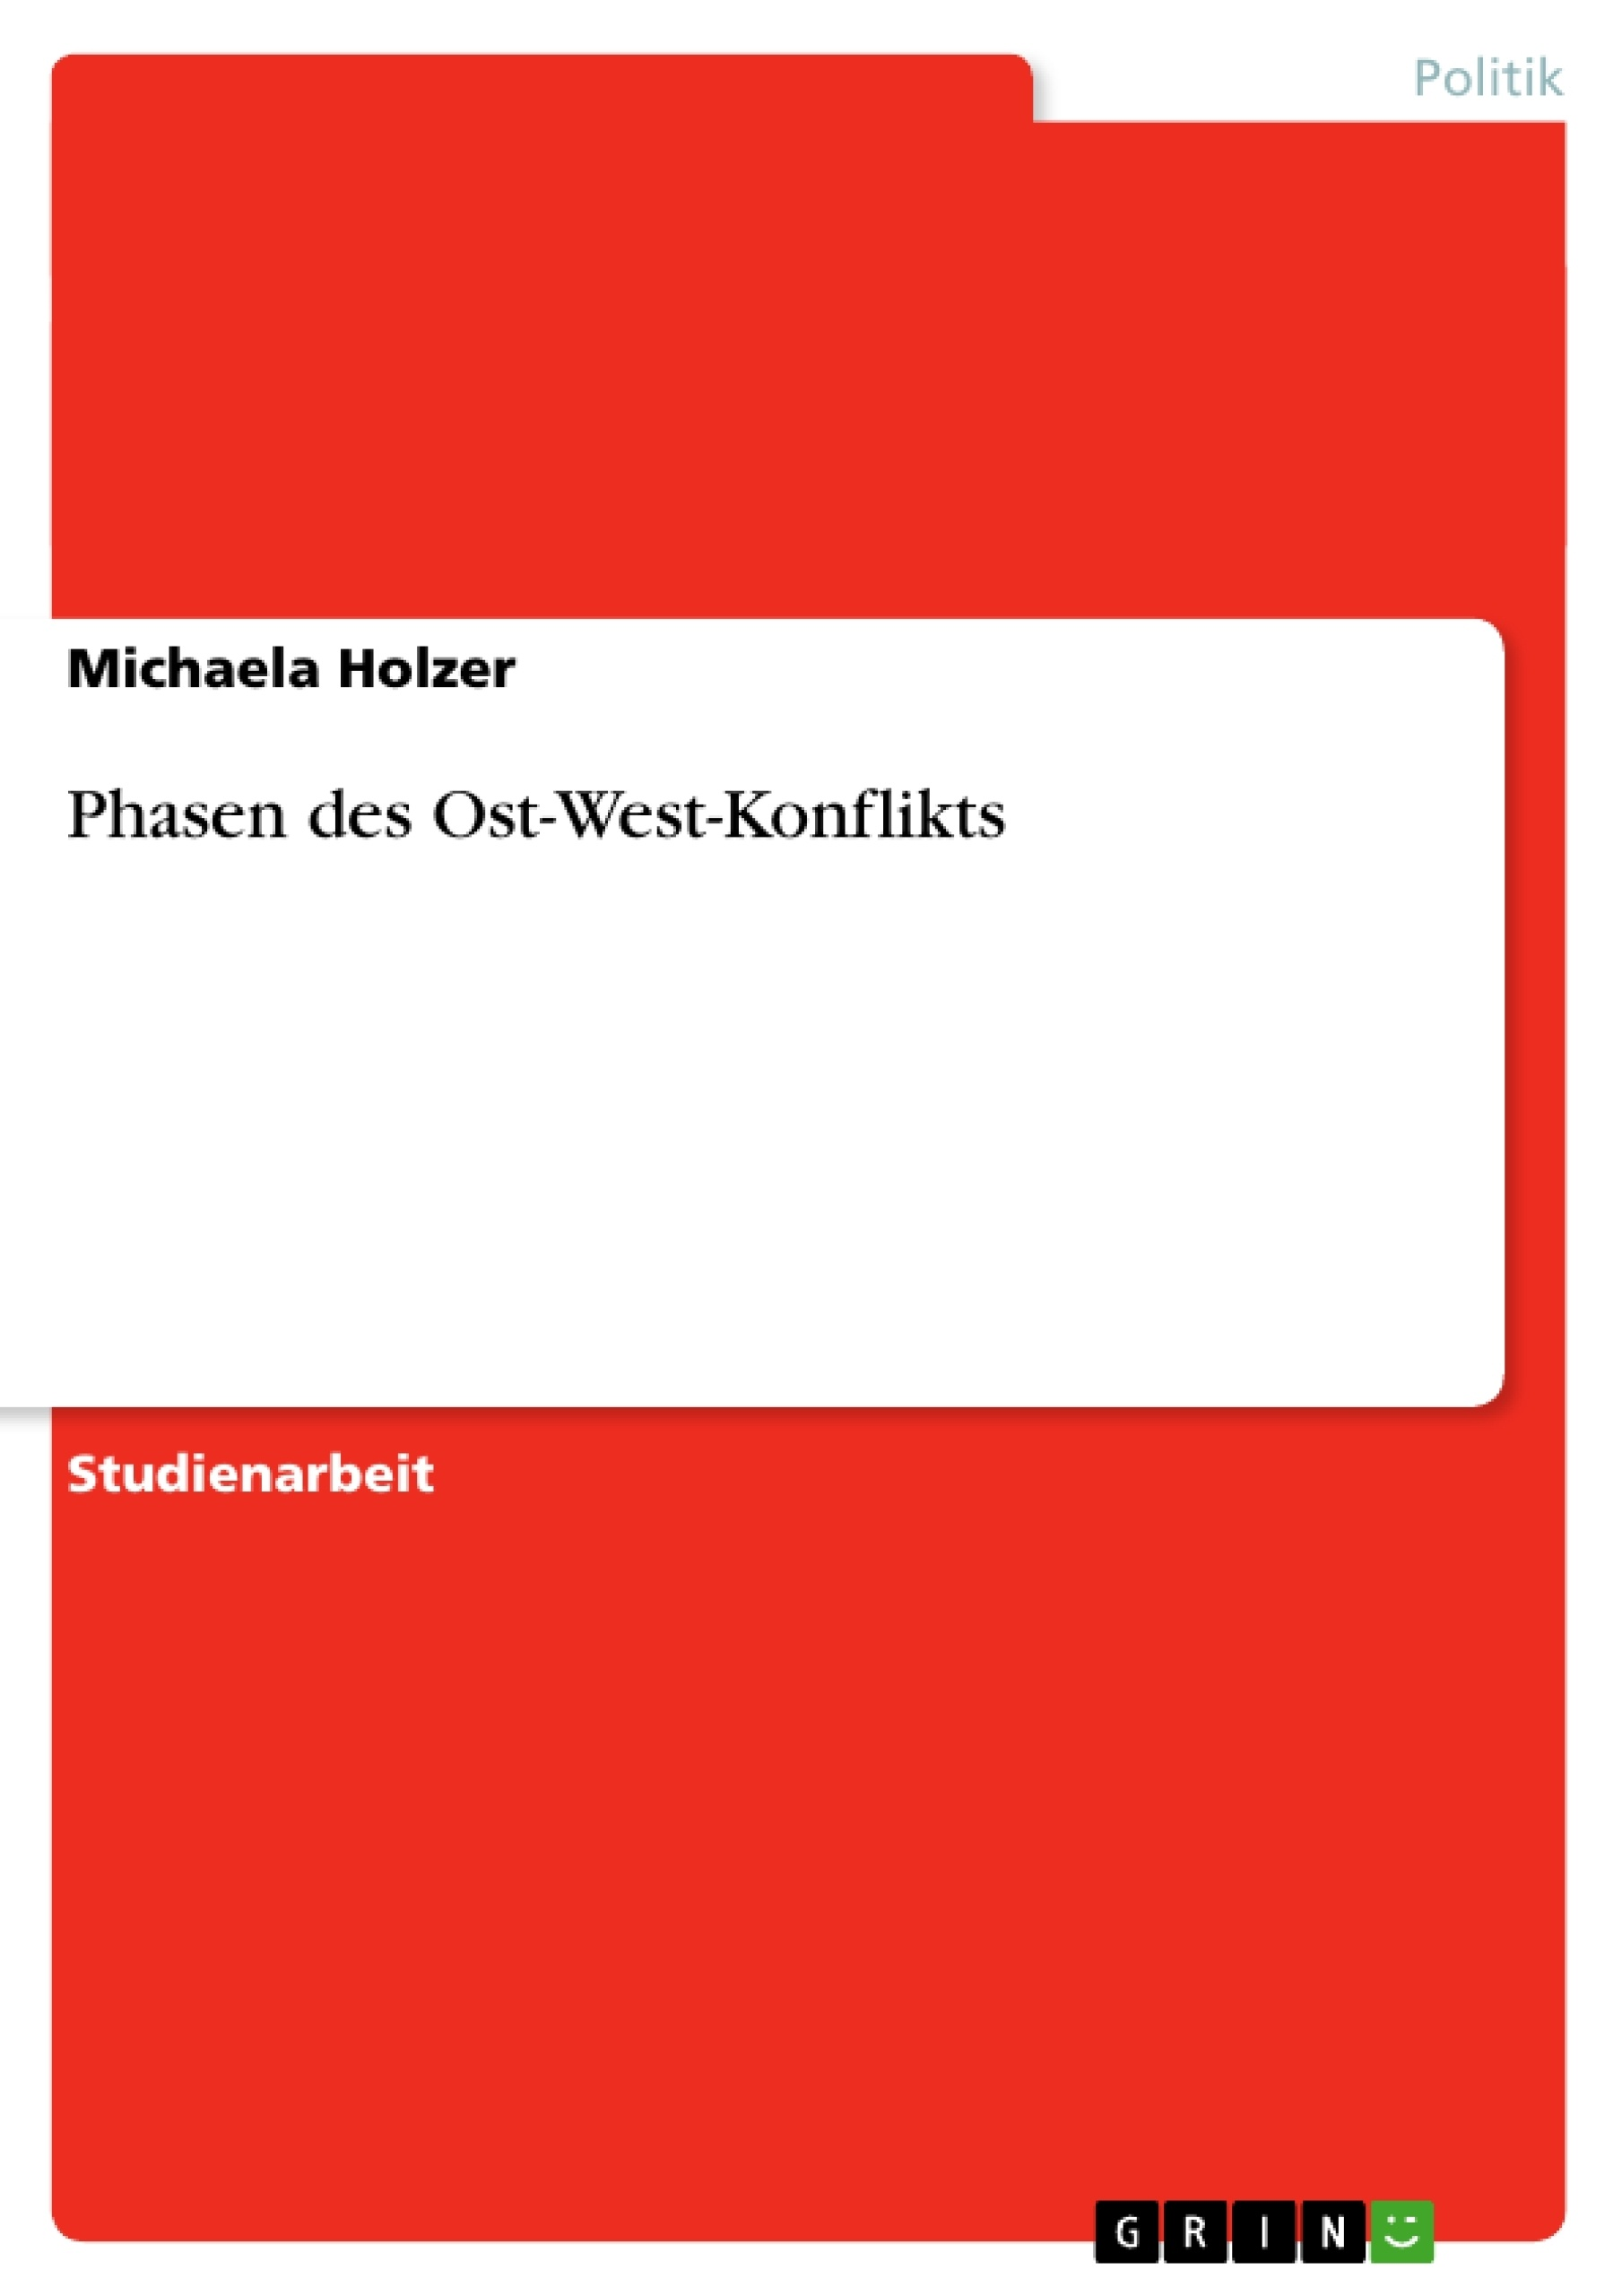 Titel: Phasen des Ost-West-Konflikts